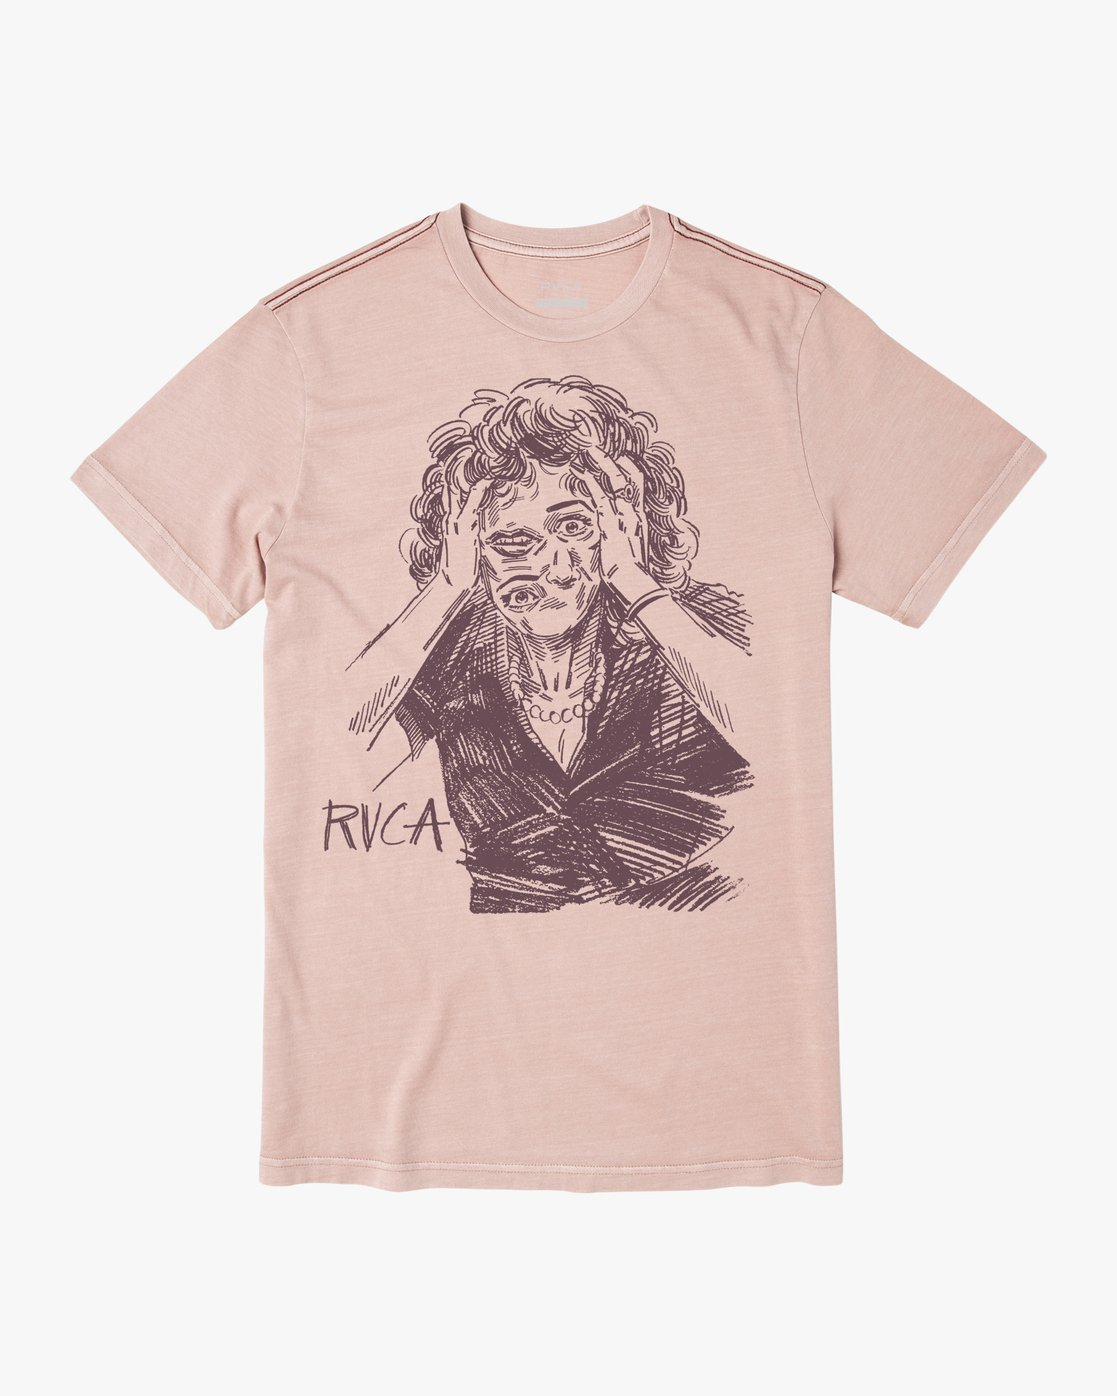 0 CHANGING FACE SHORT SLEEVE TEE Grey M4383RCF RVCA